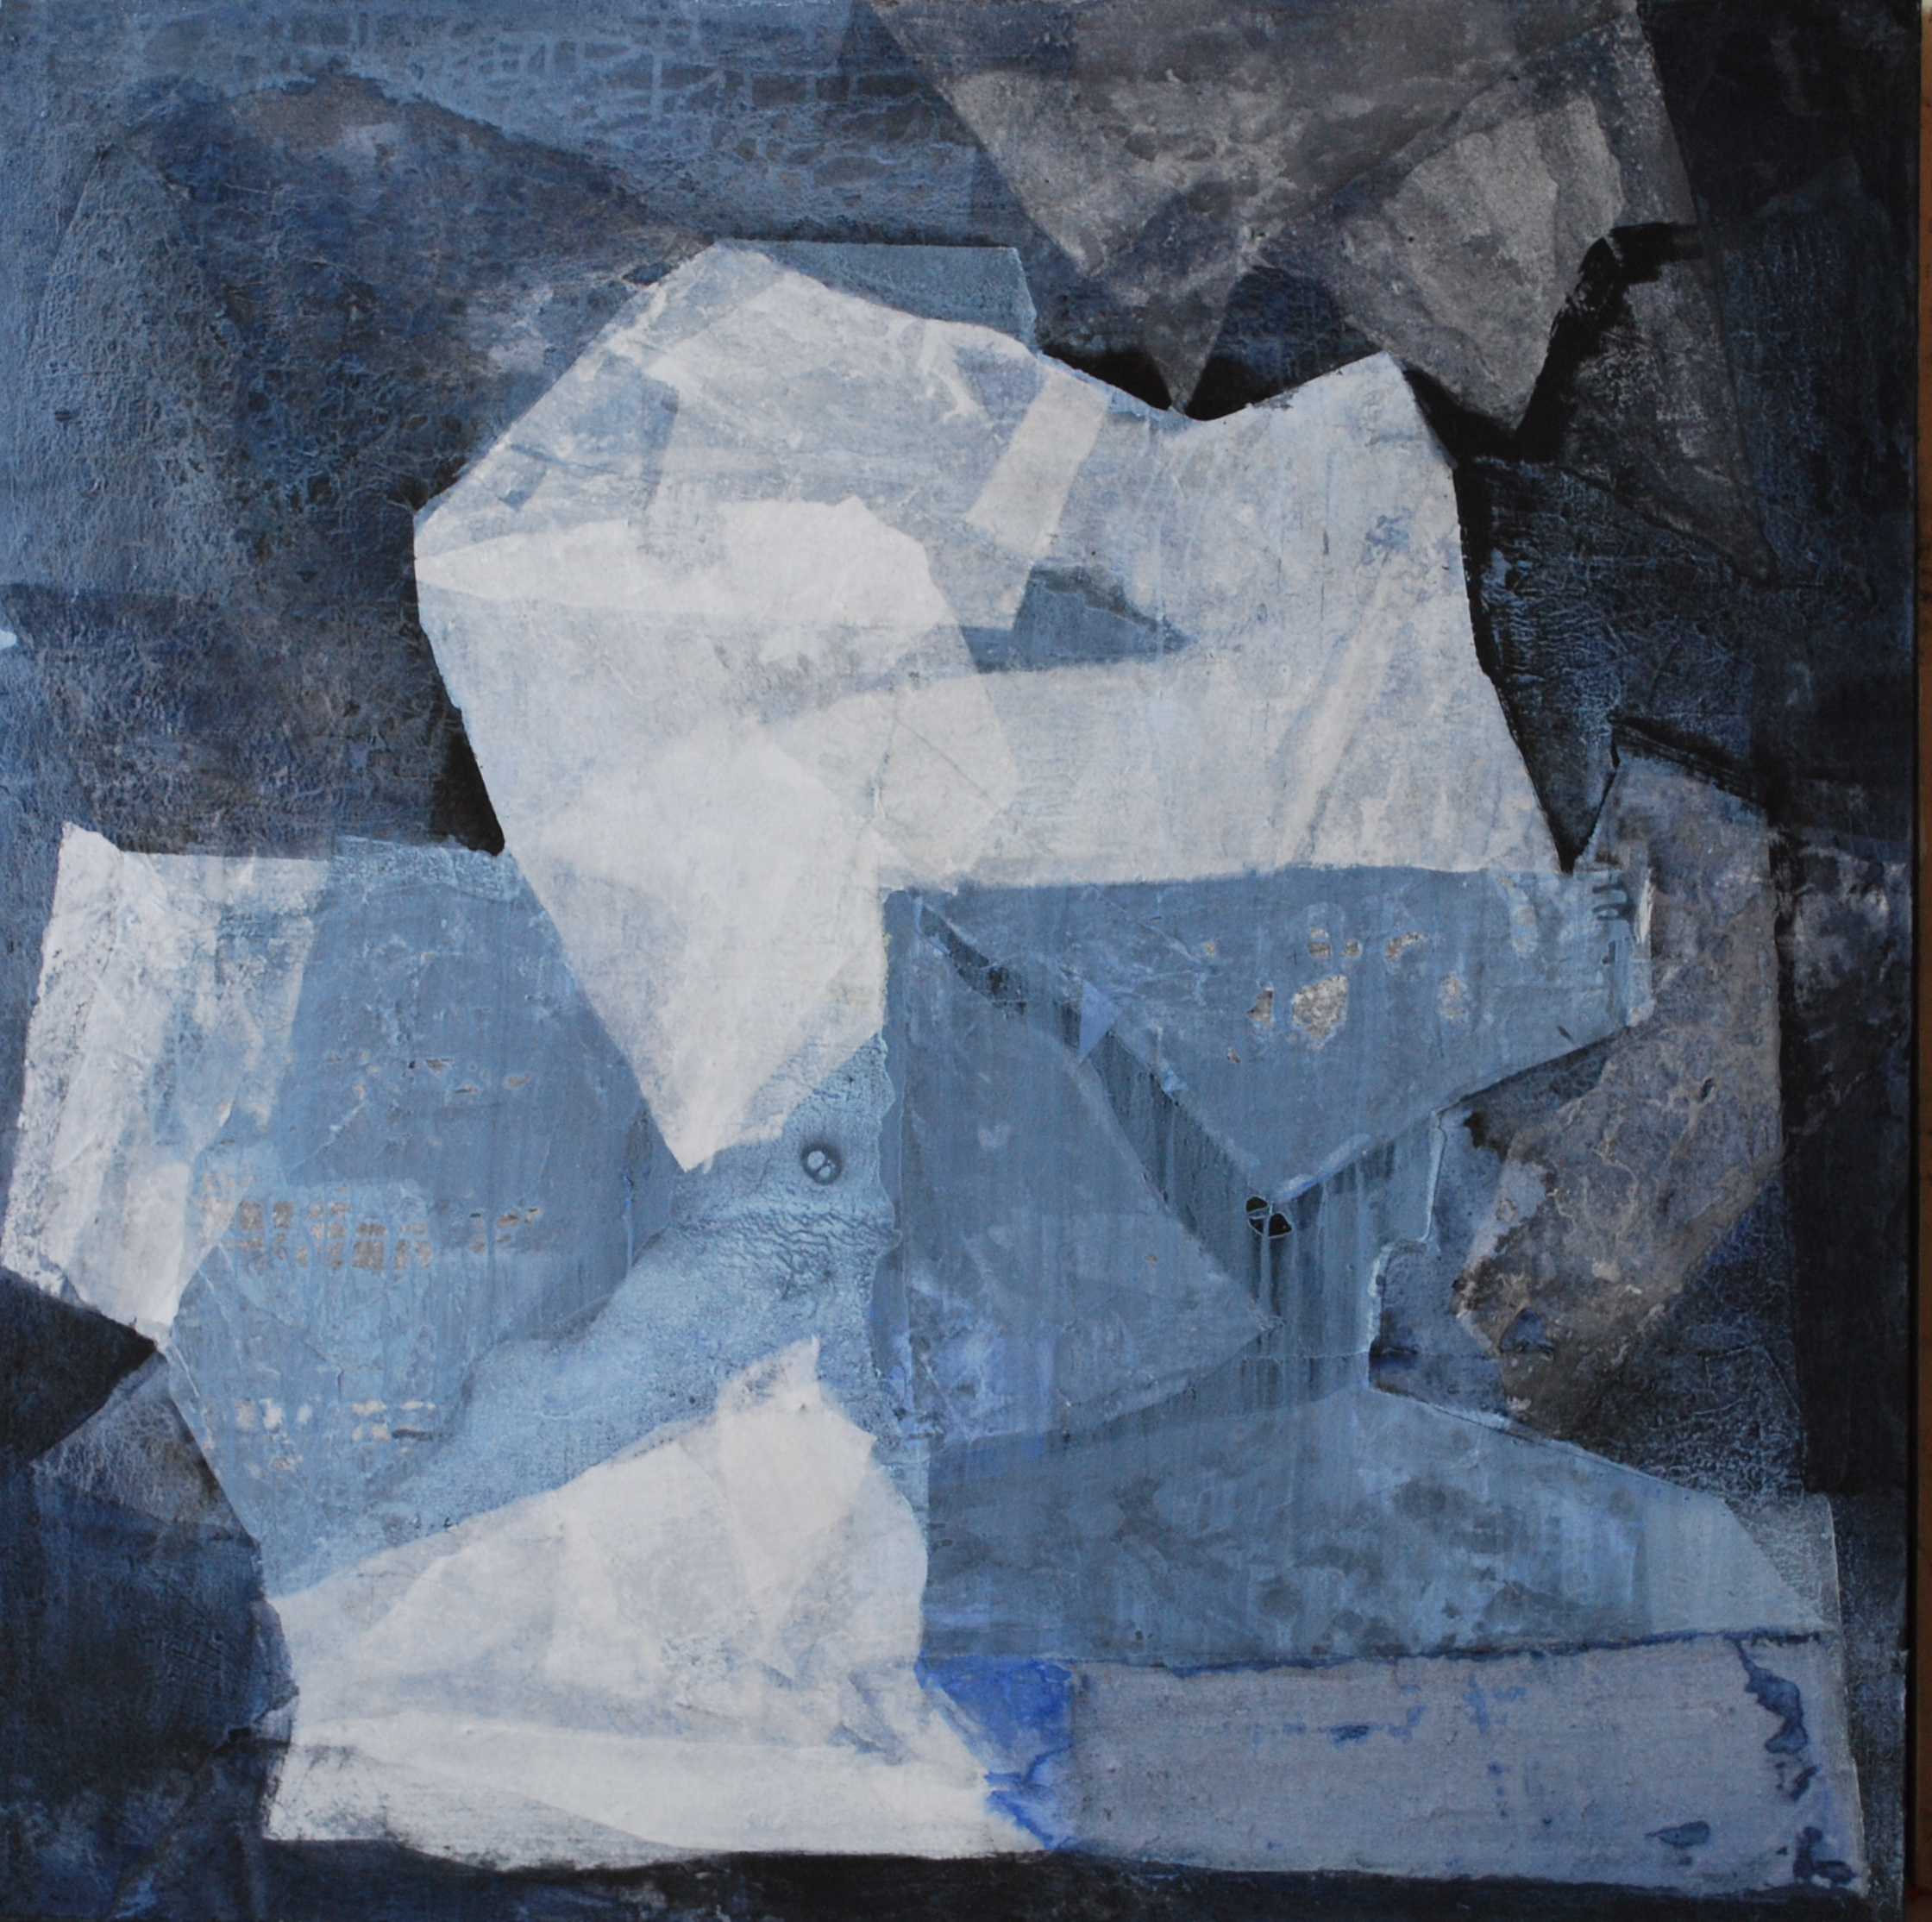 SoHyun Bae, Wrapped Shards #11, 2002, rice-paper and pure pigment on canvas, 60 x 60 inches